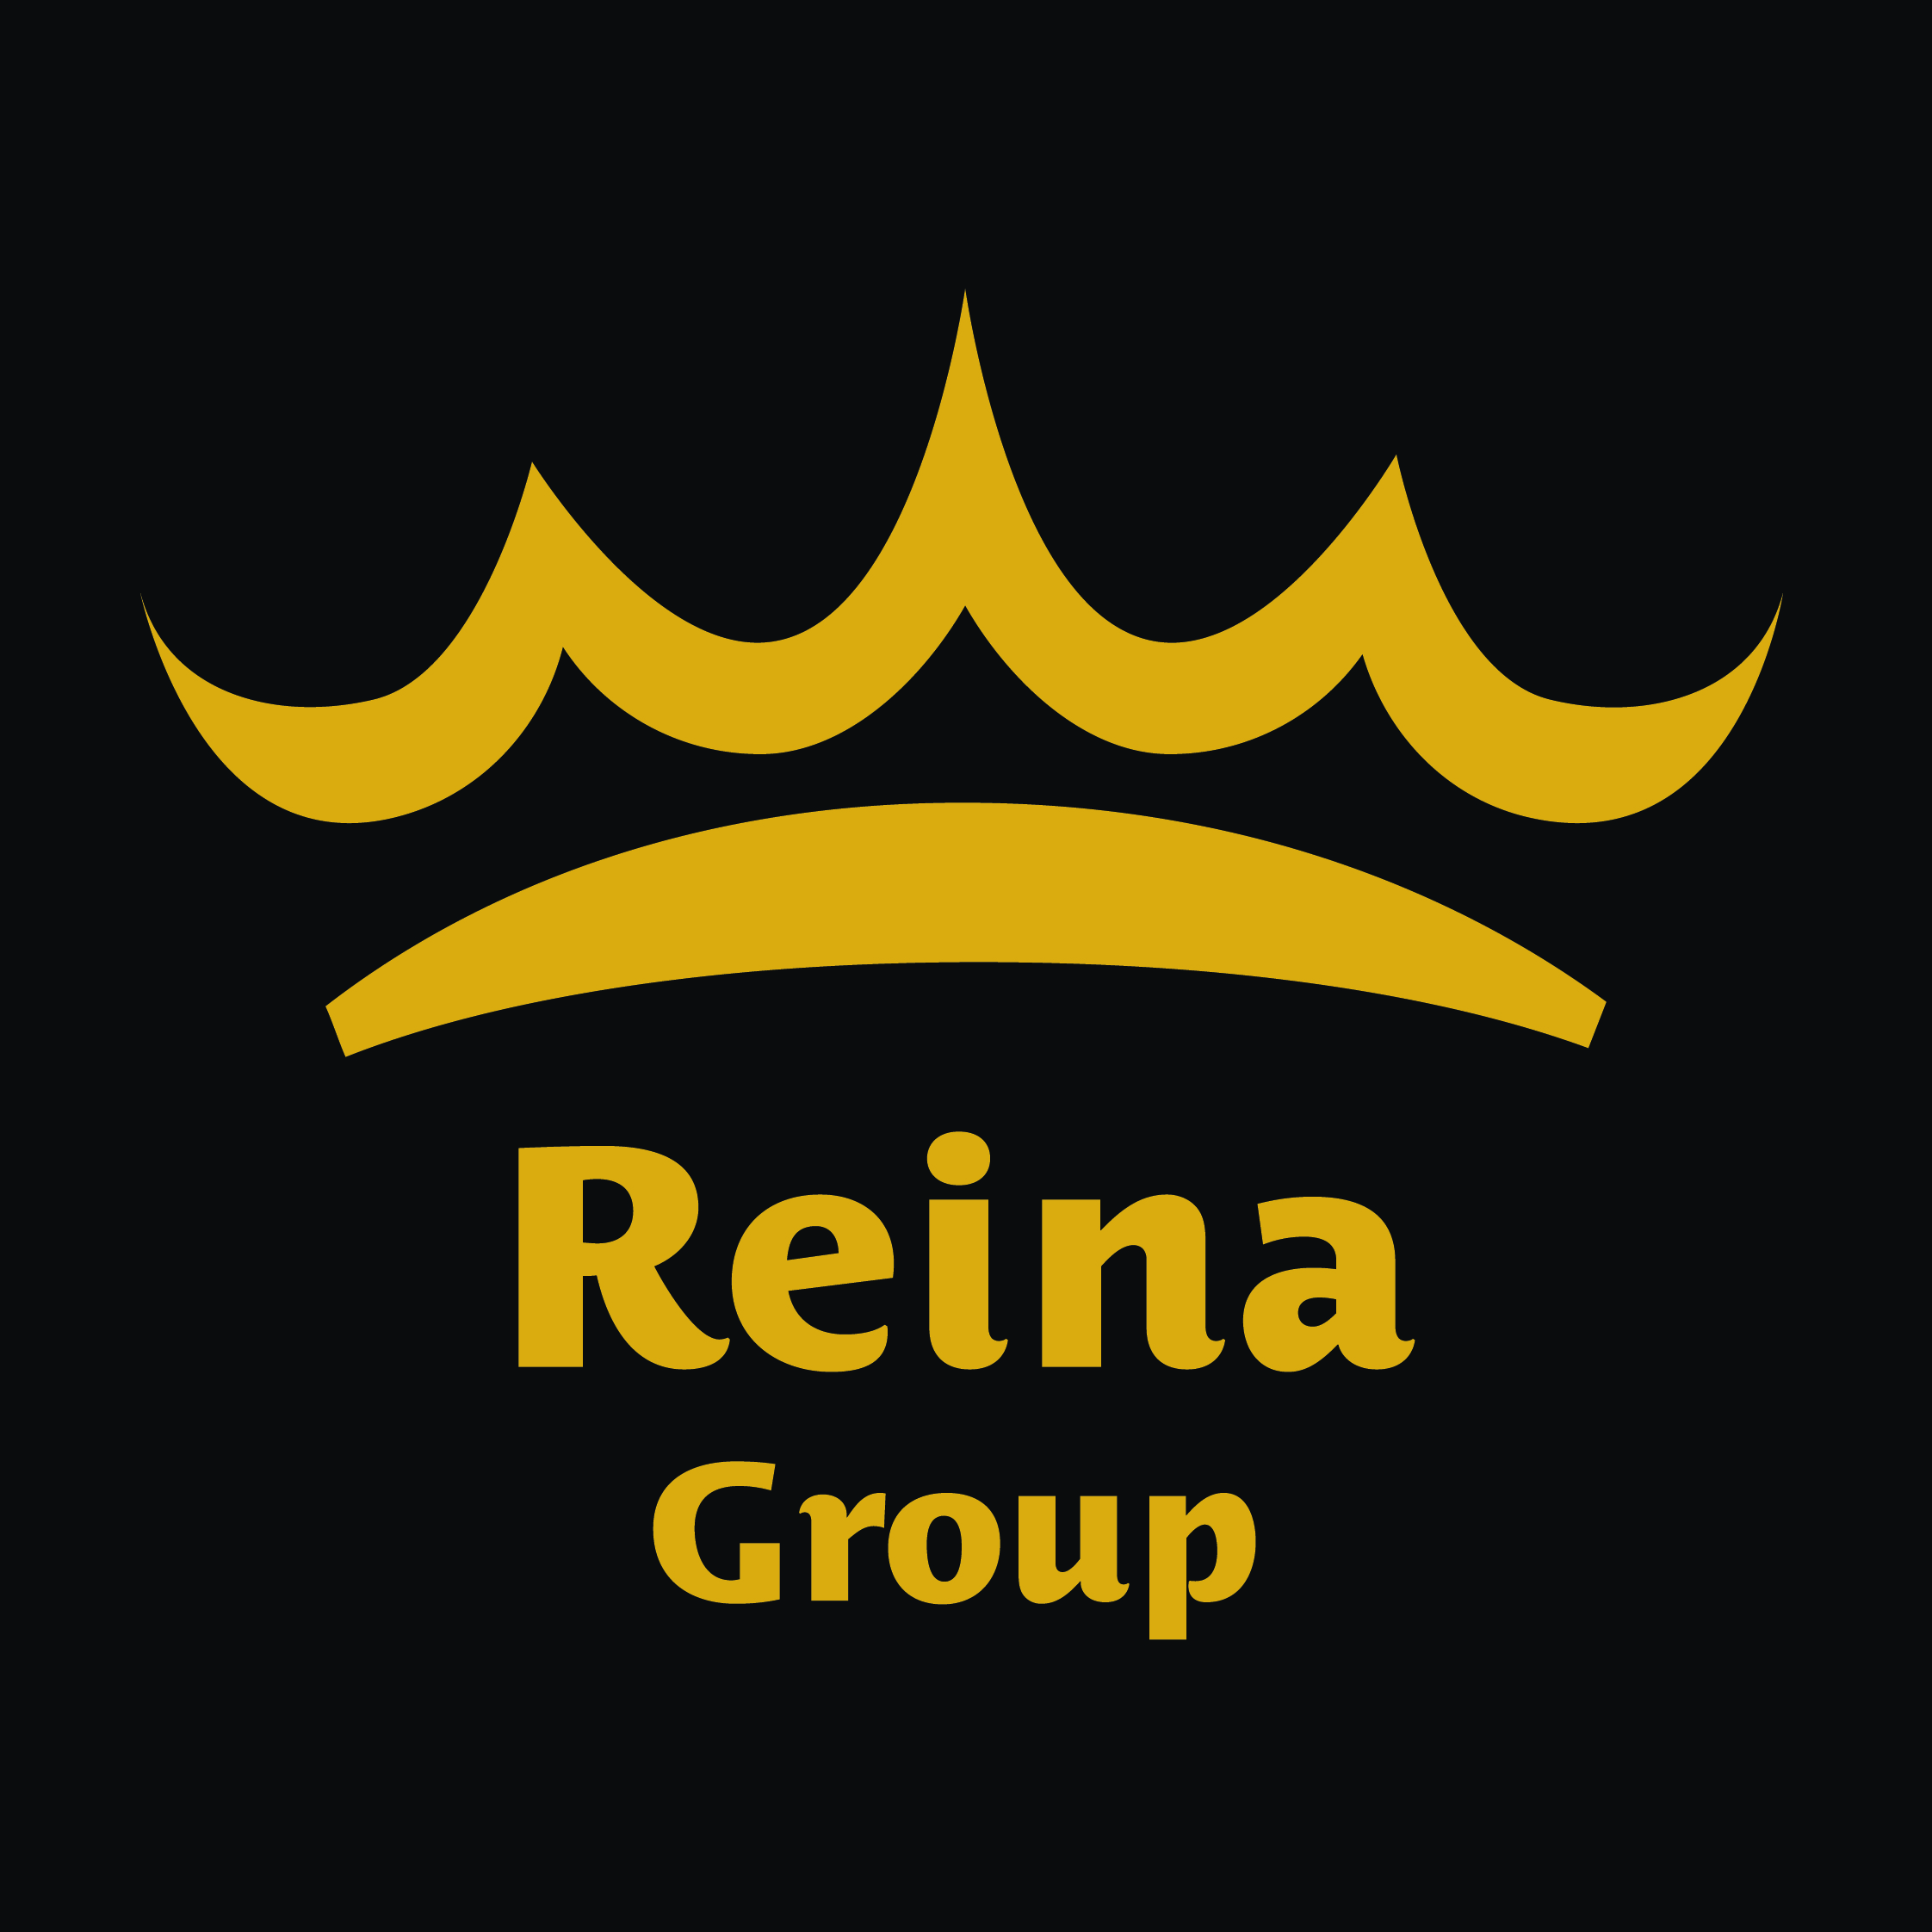 logotipo Reina Group.jpg